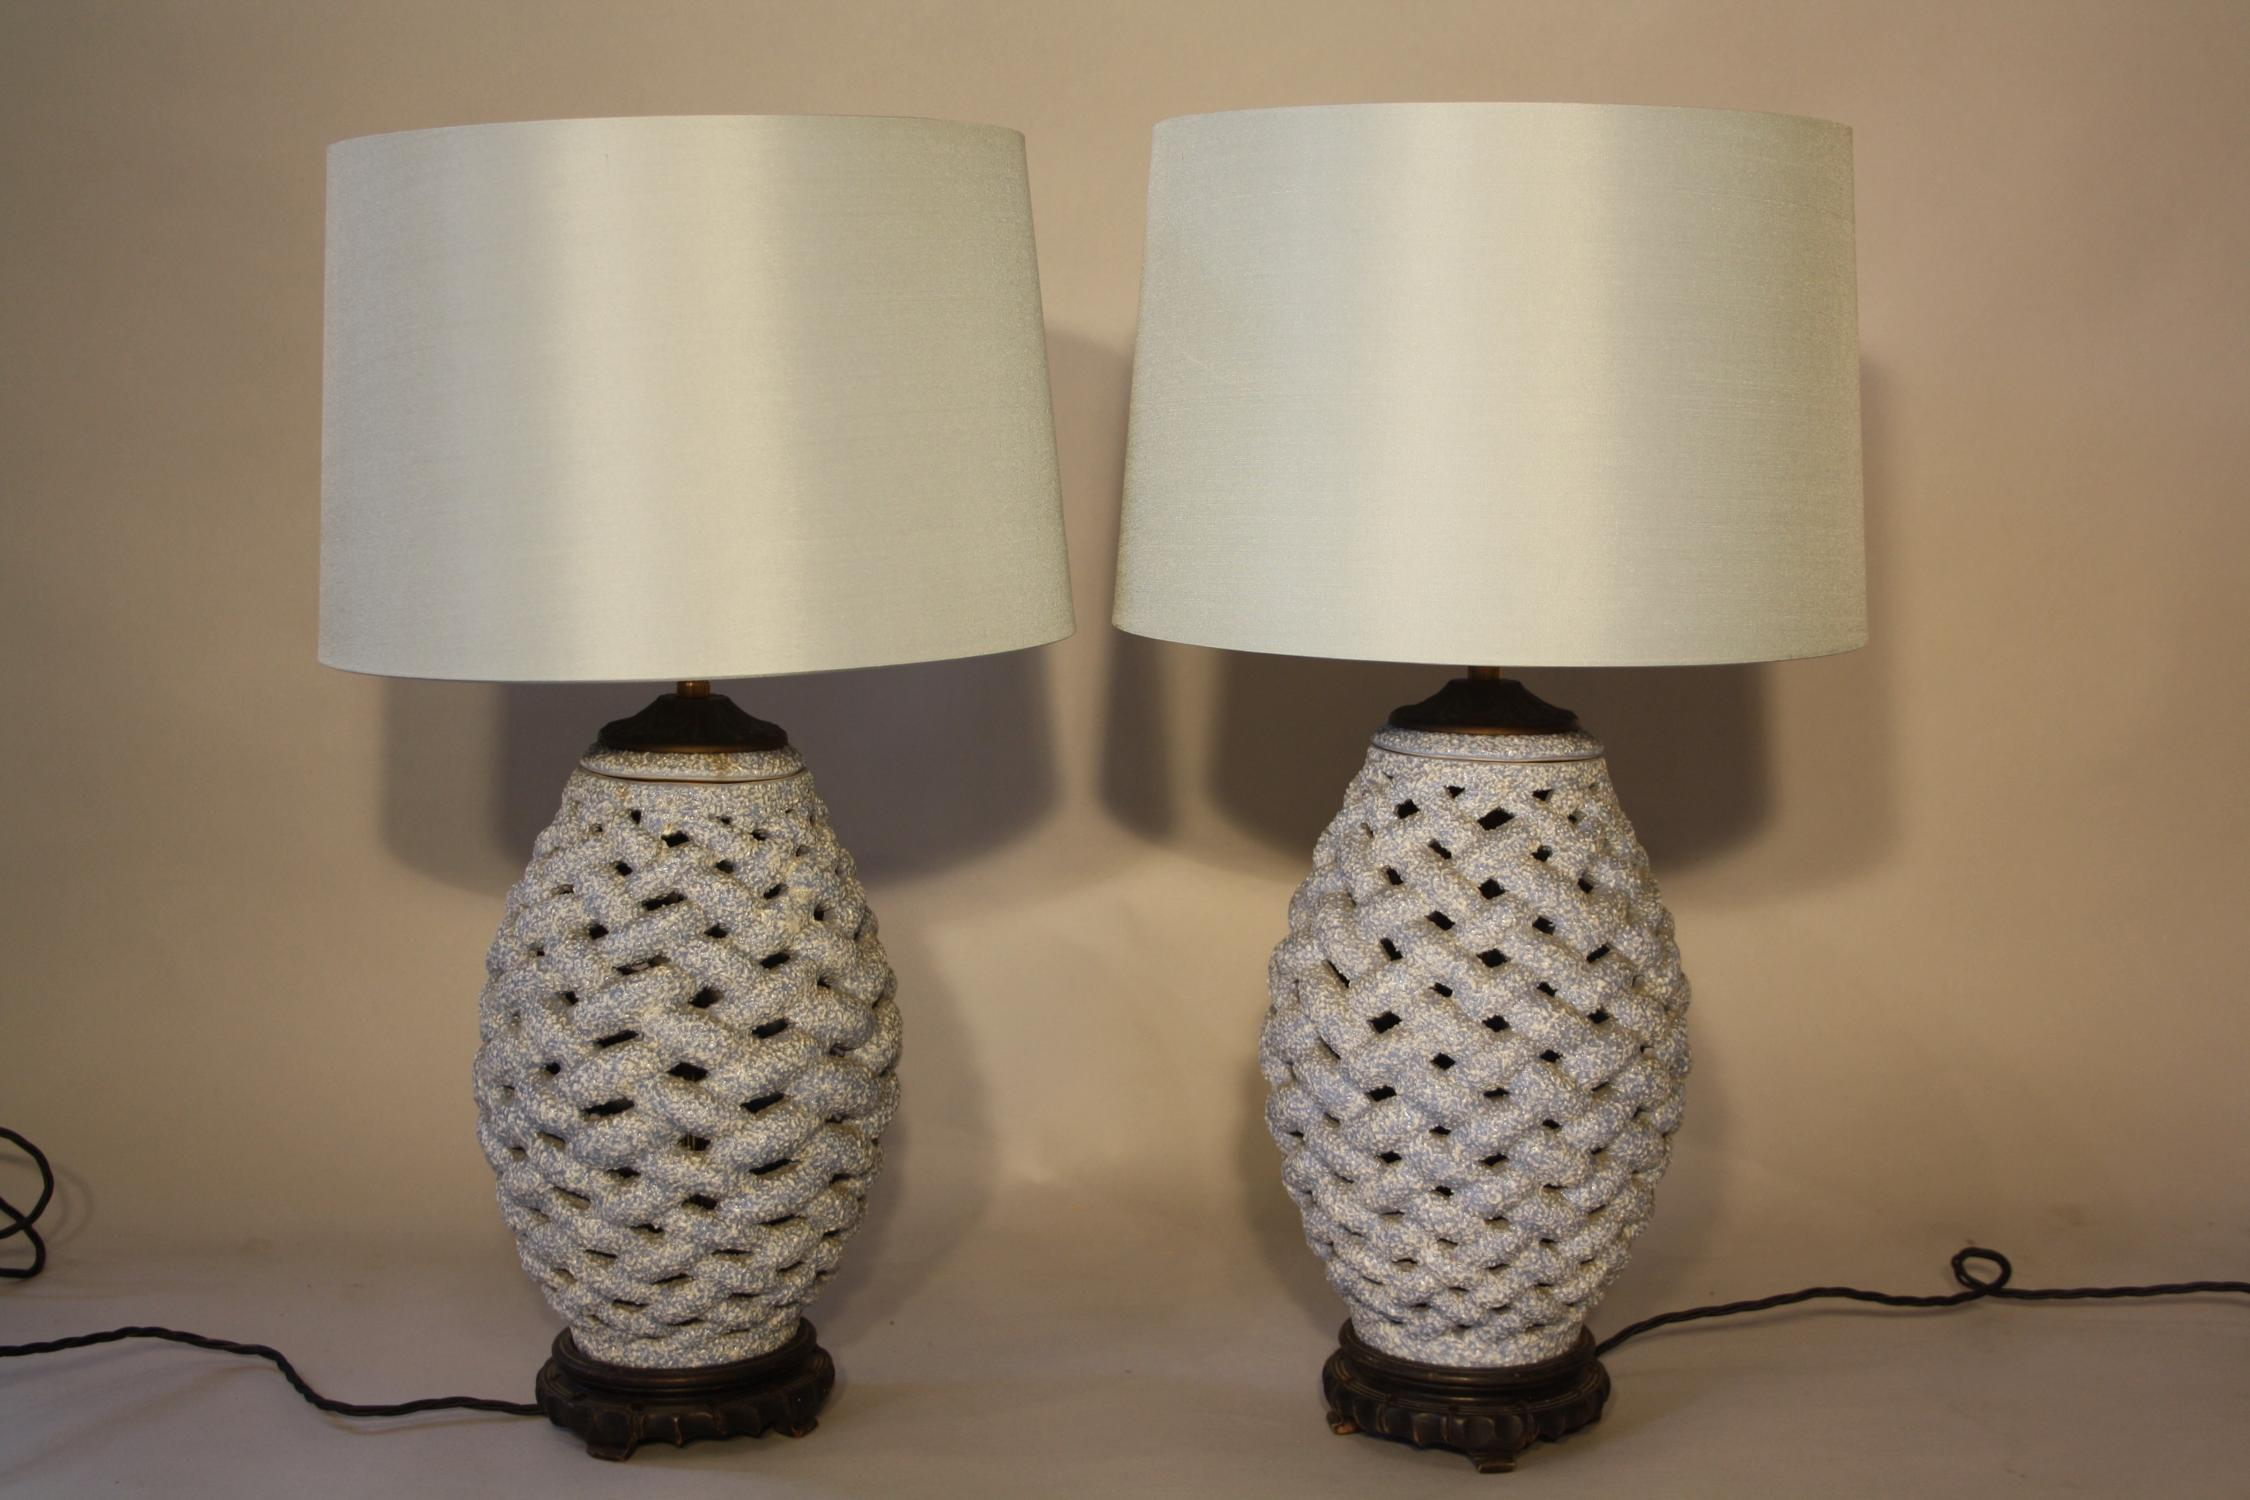 Pair of ceramic criss cross lamps